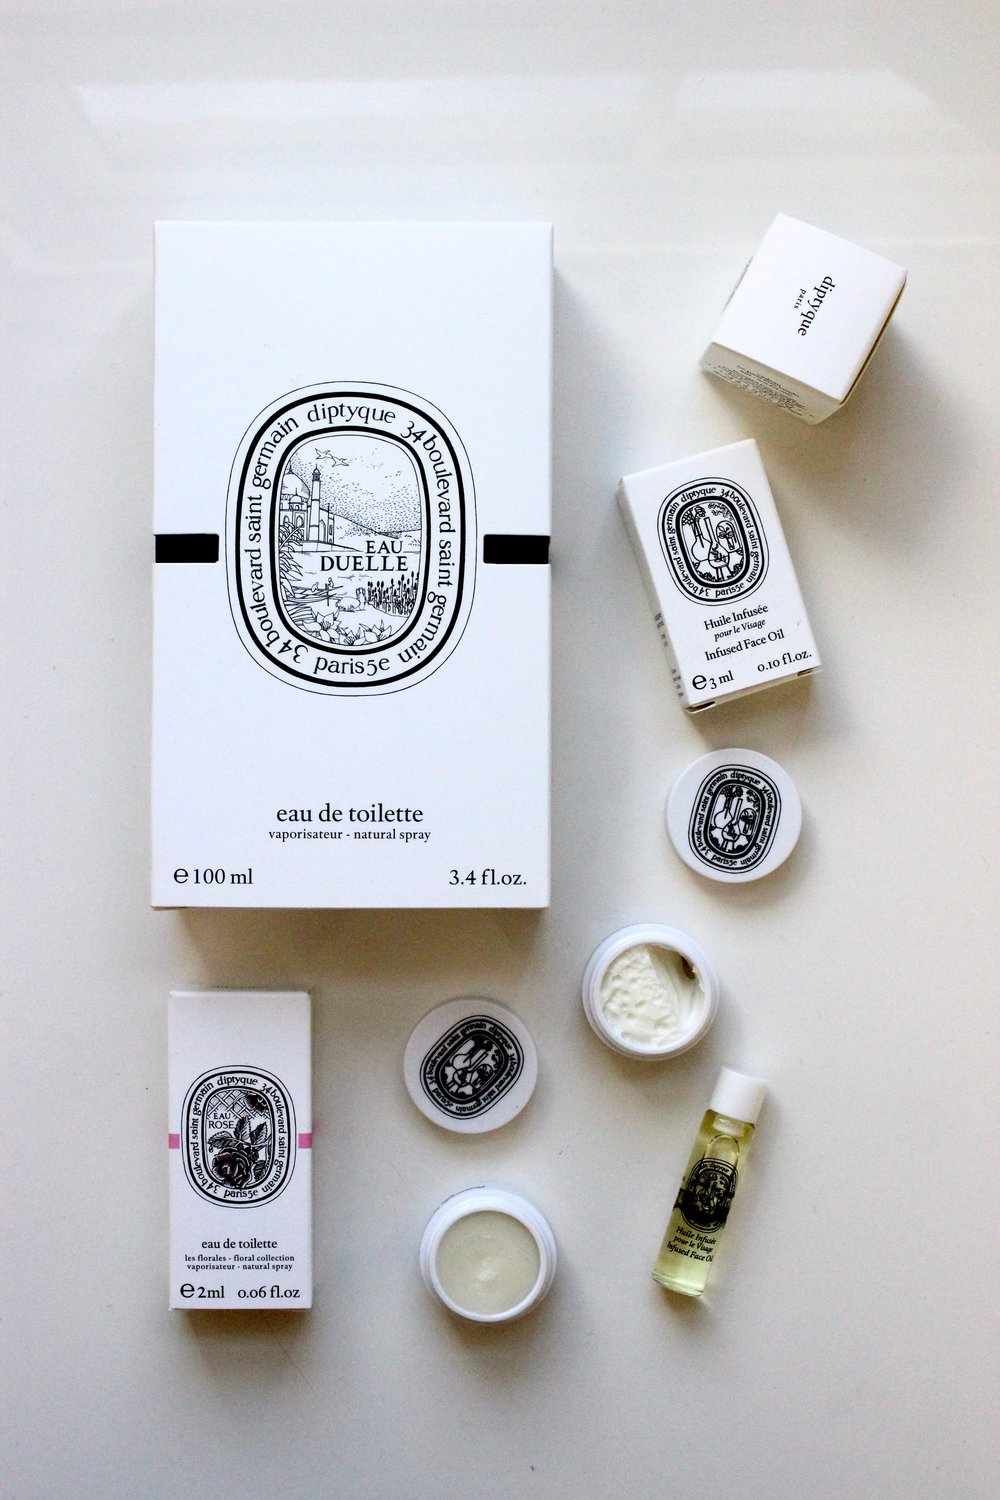 Diptyque, giving you All Of The Samples since 1961